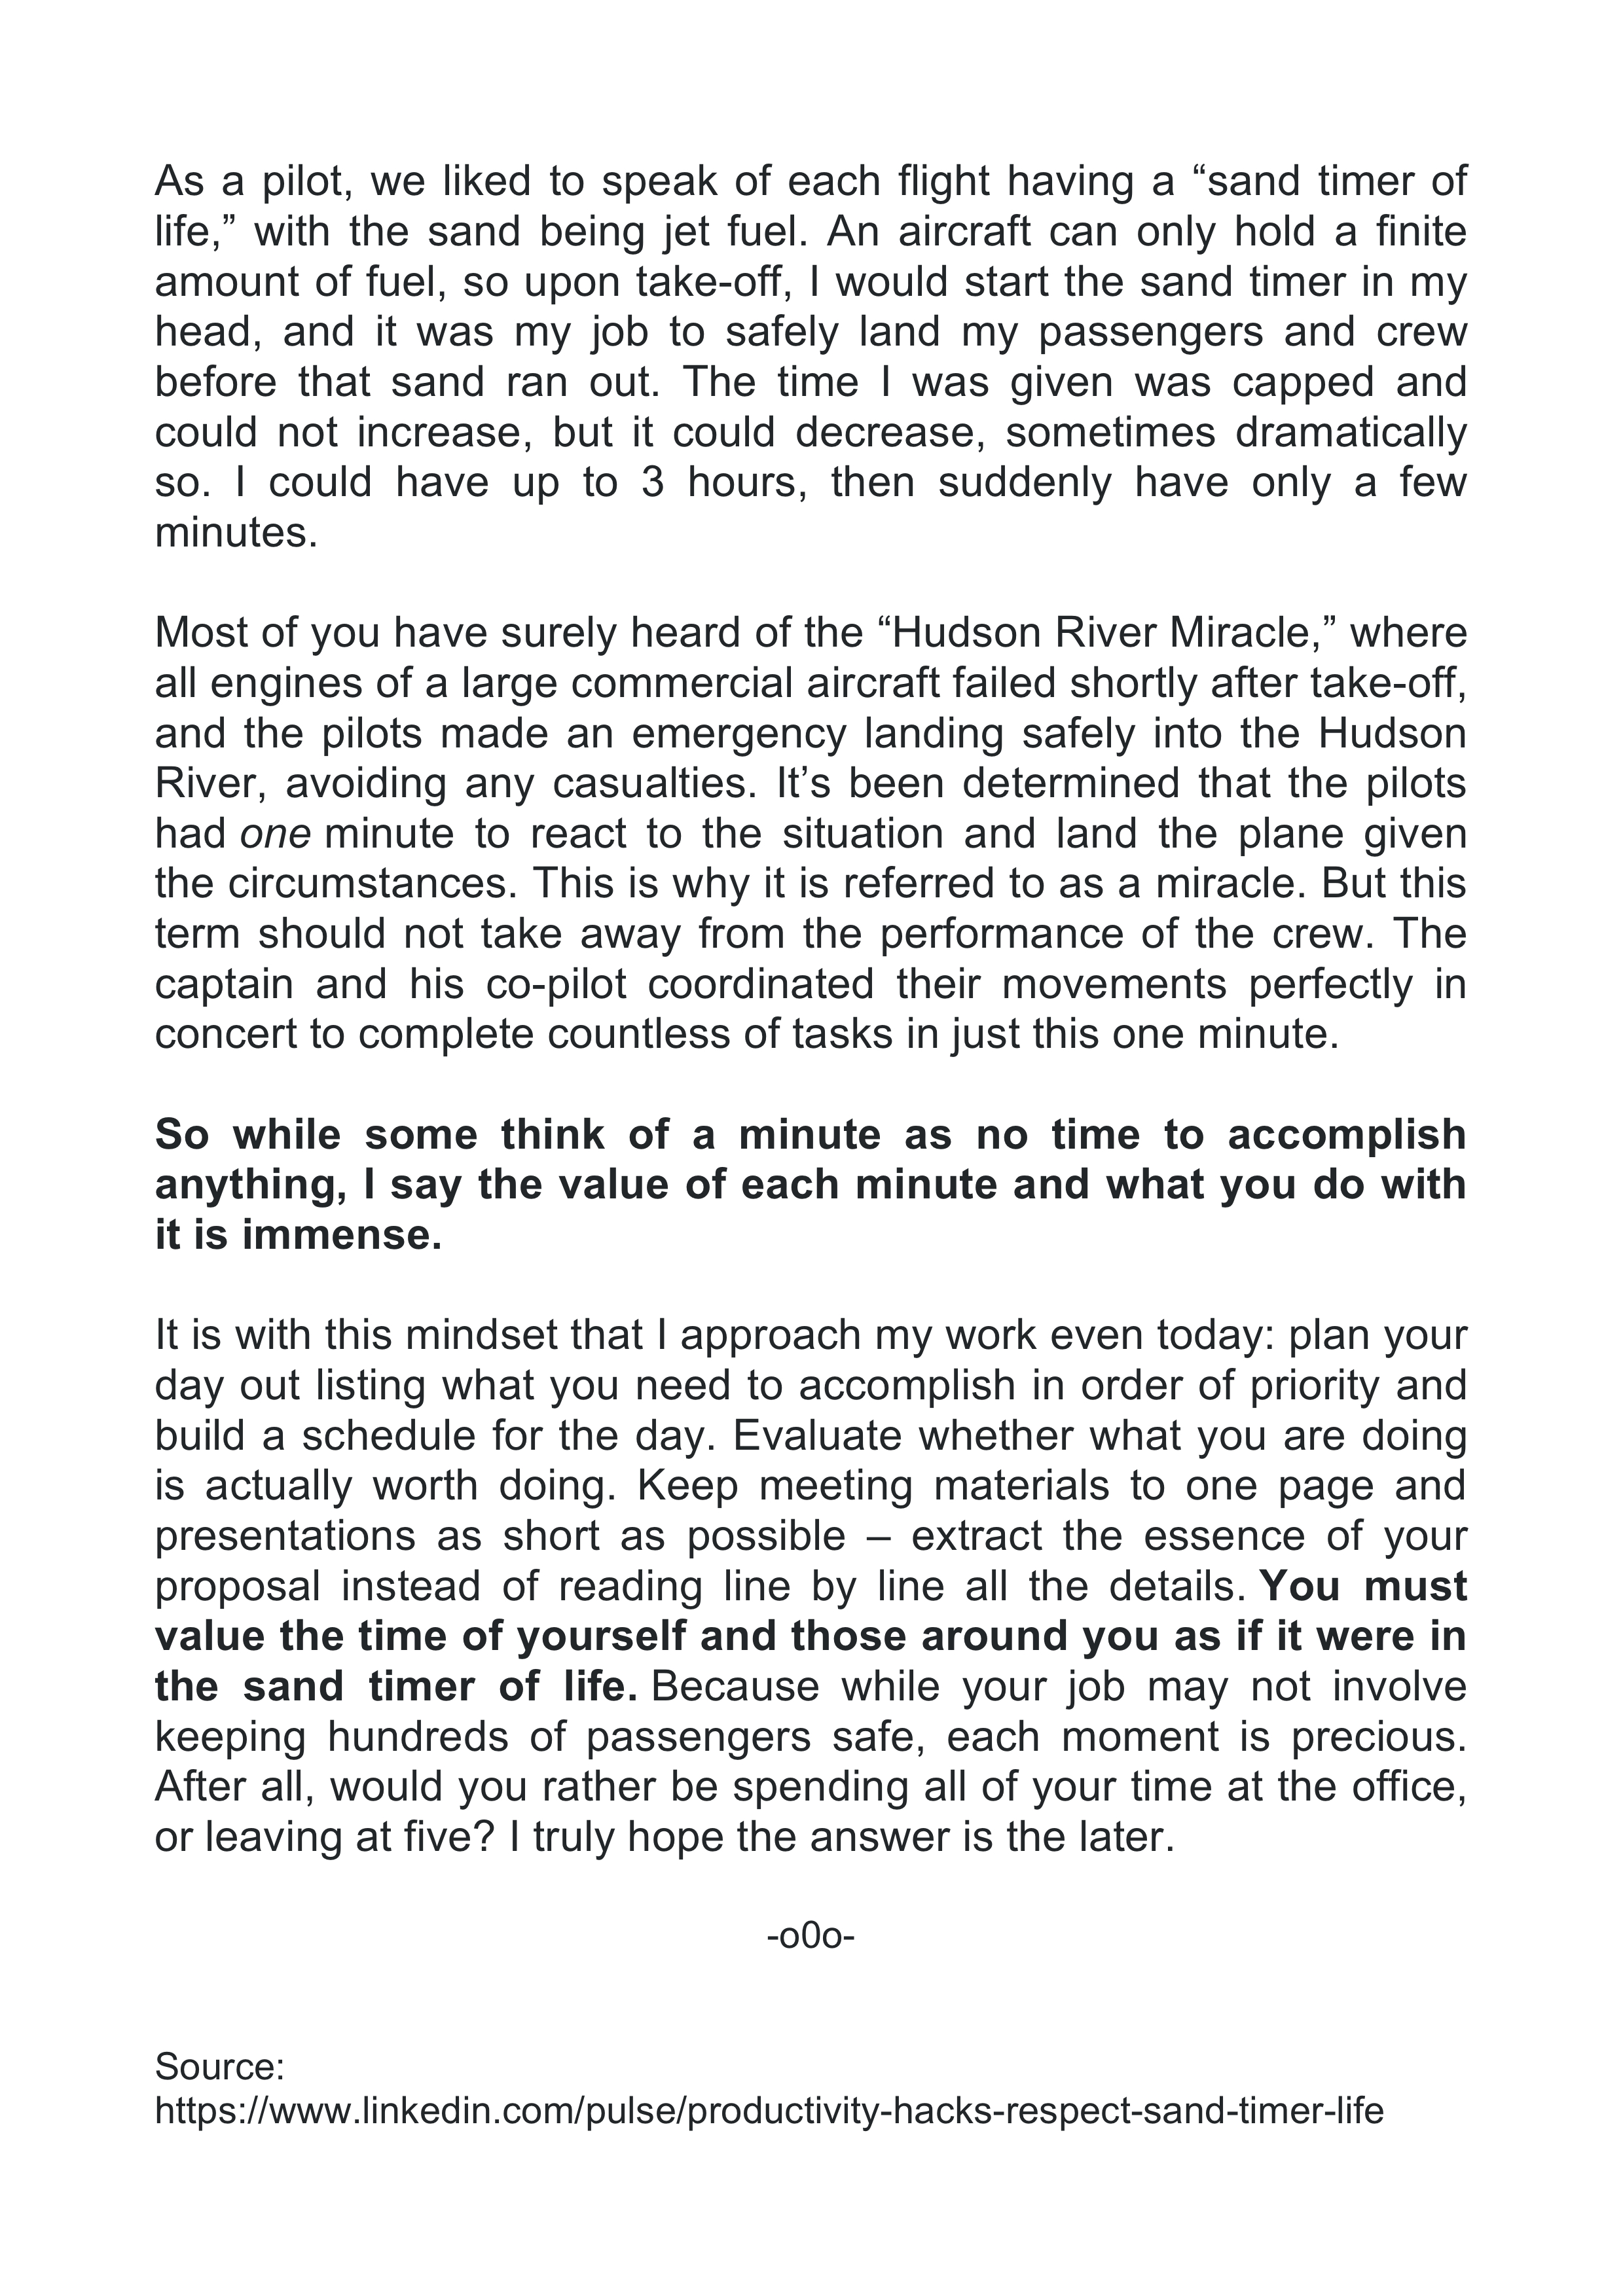 38_Respect the sand timer of life_page2_300